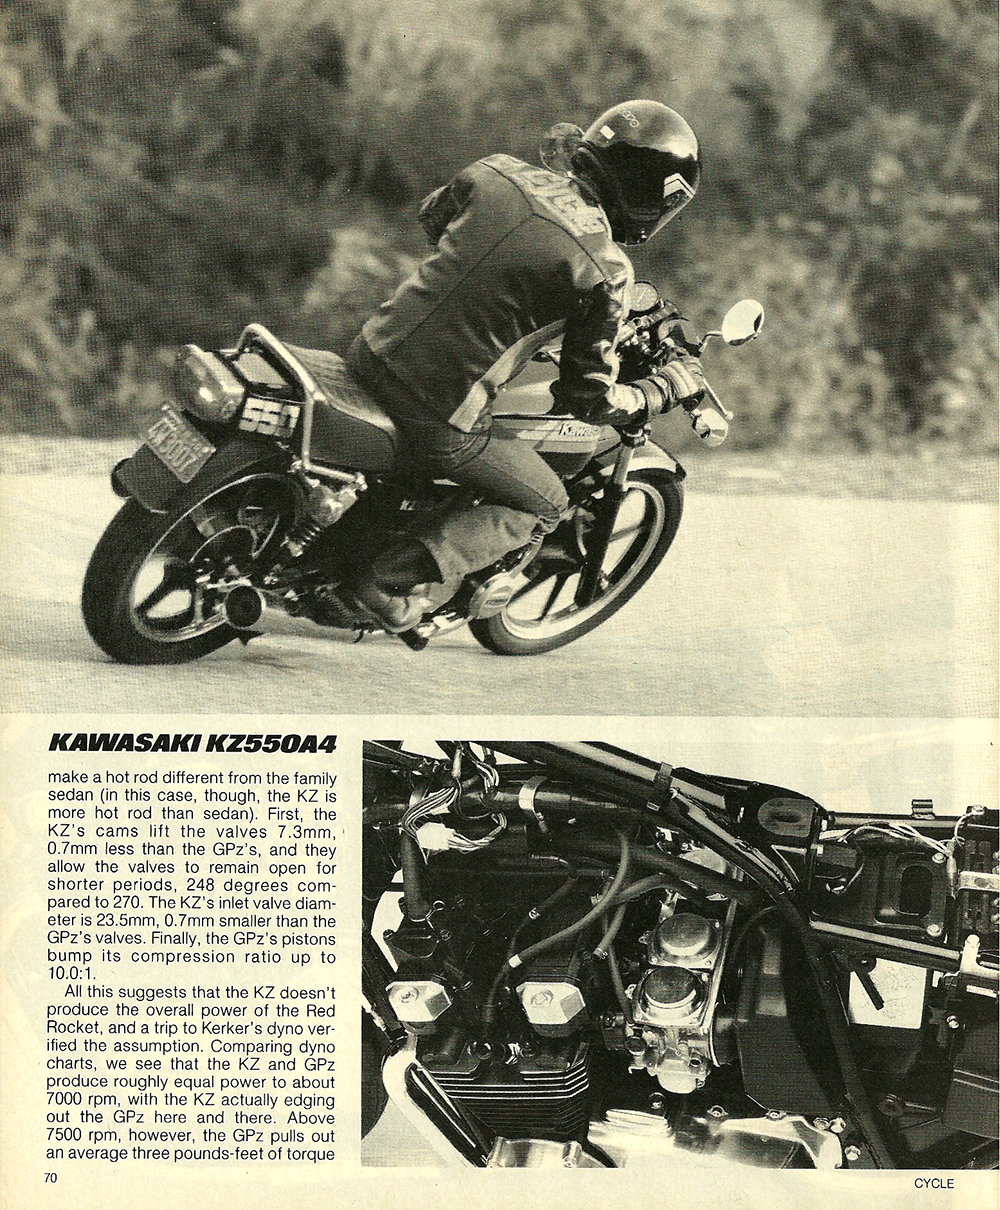 1983 Kawasaki KZ550 A4 road test 6.jpg